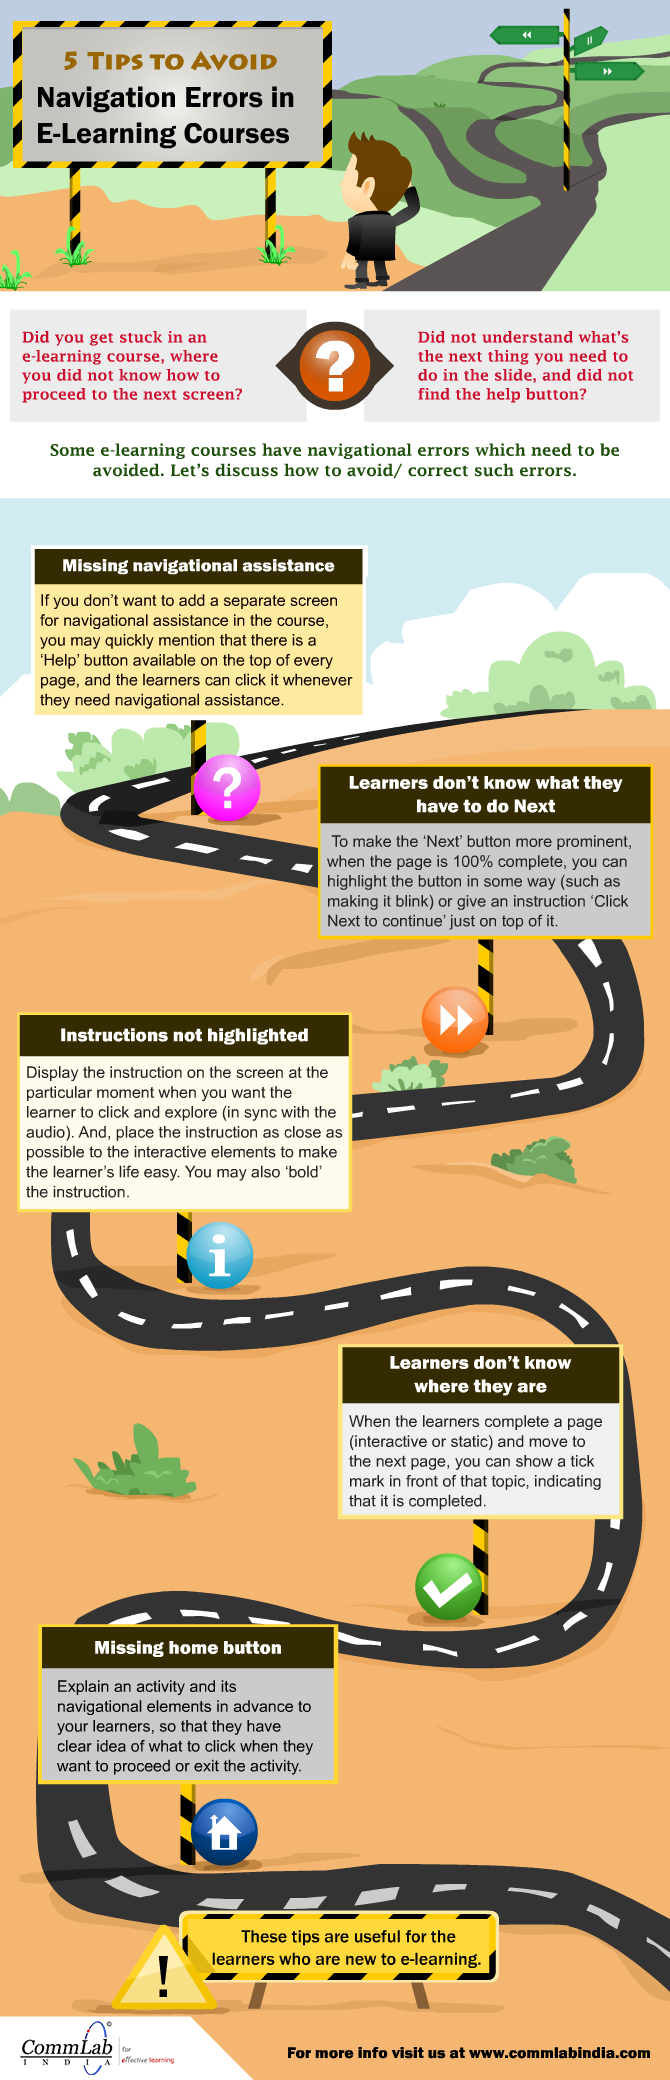 E-learning Design - 5 Navigation Errors That Affect Your Online Course [Infographic]